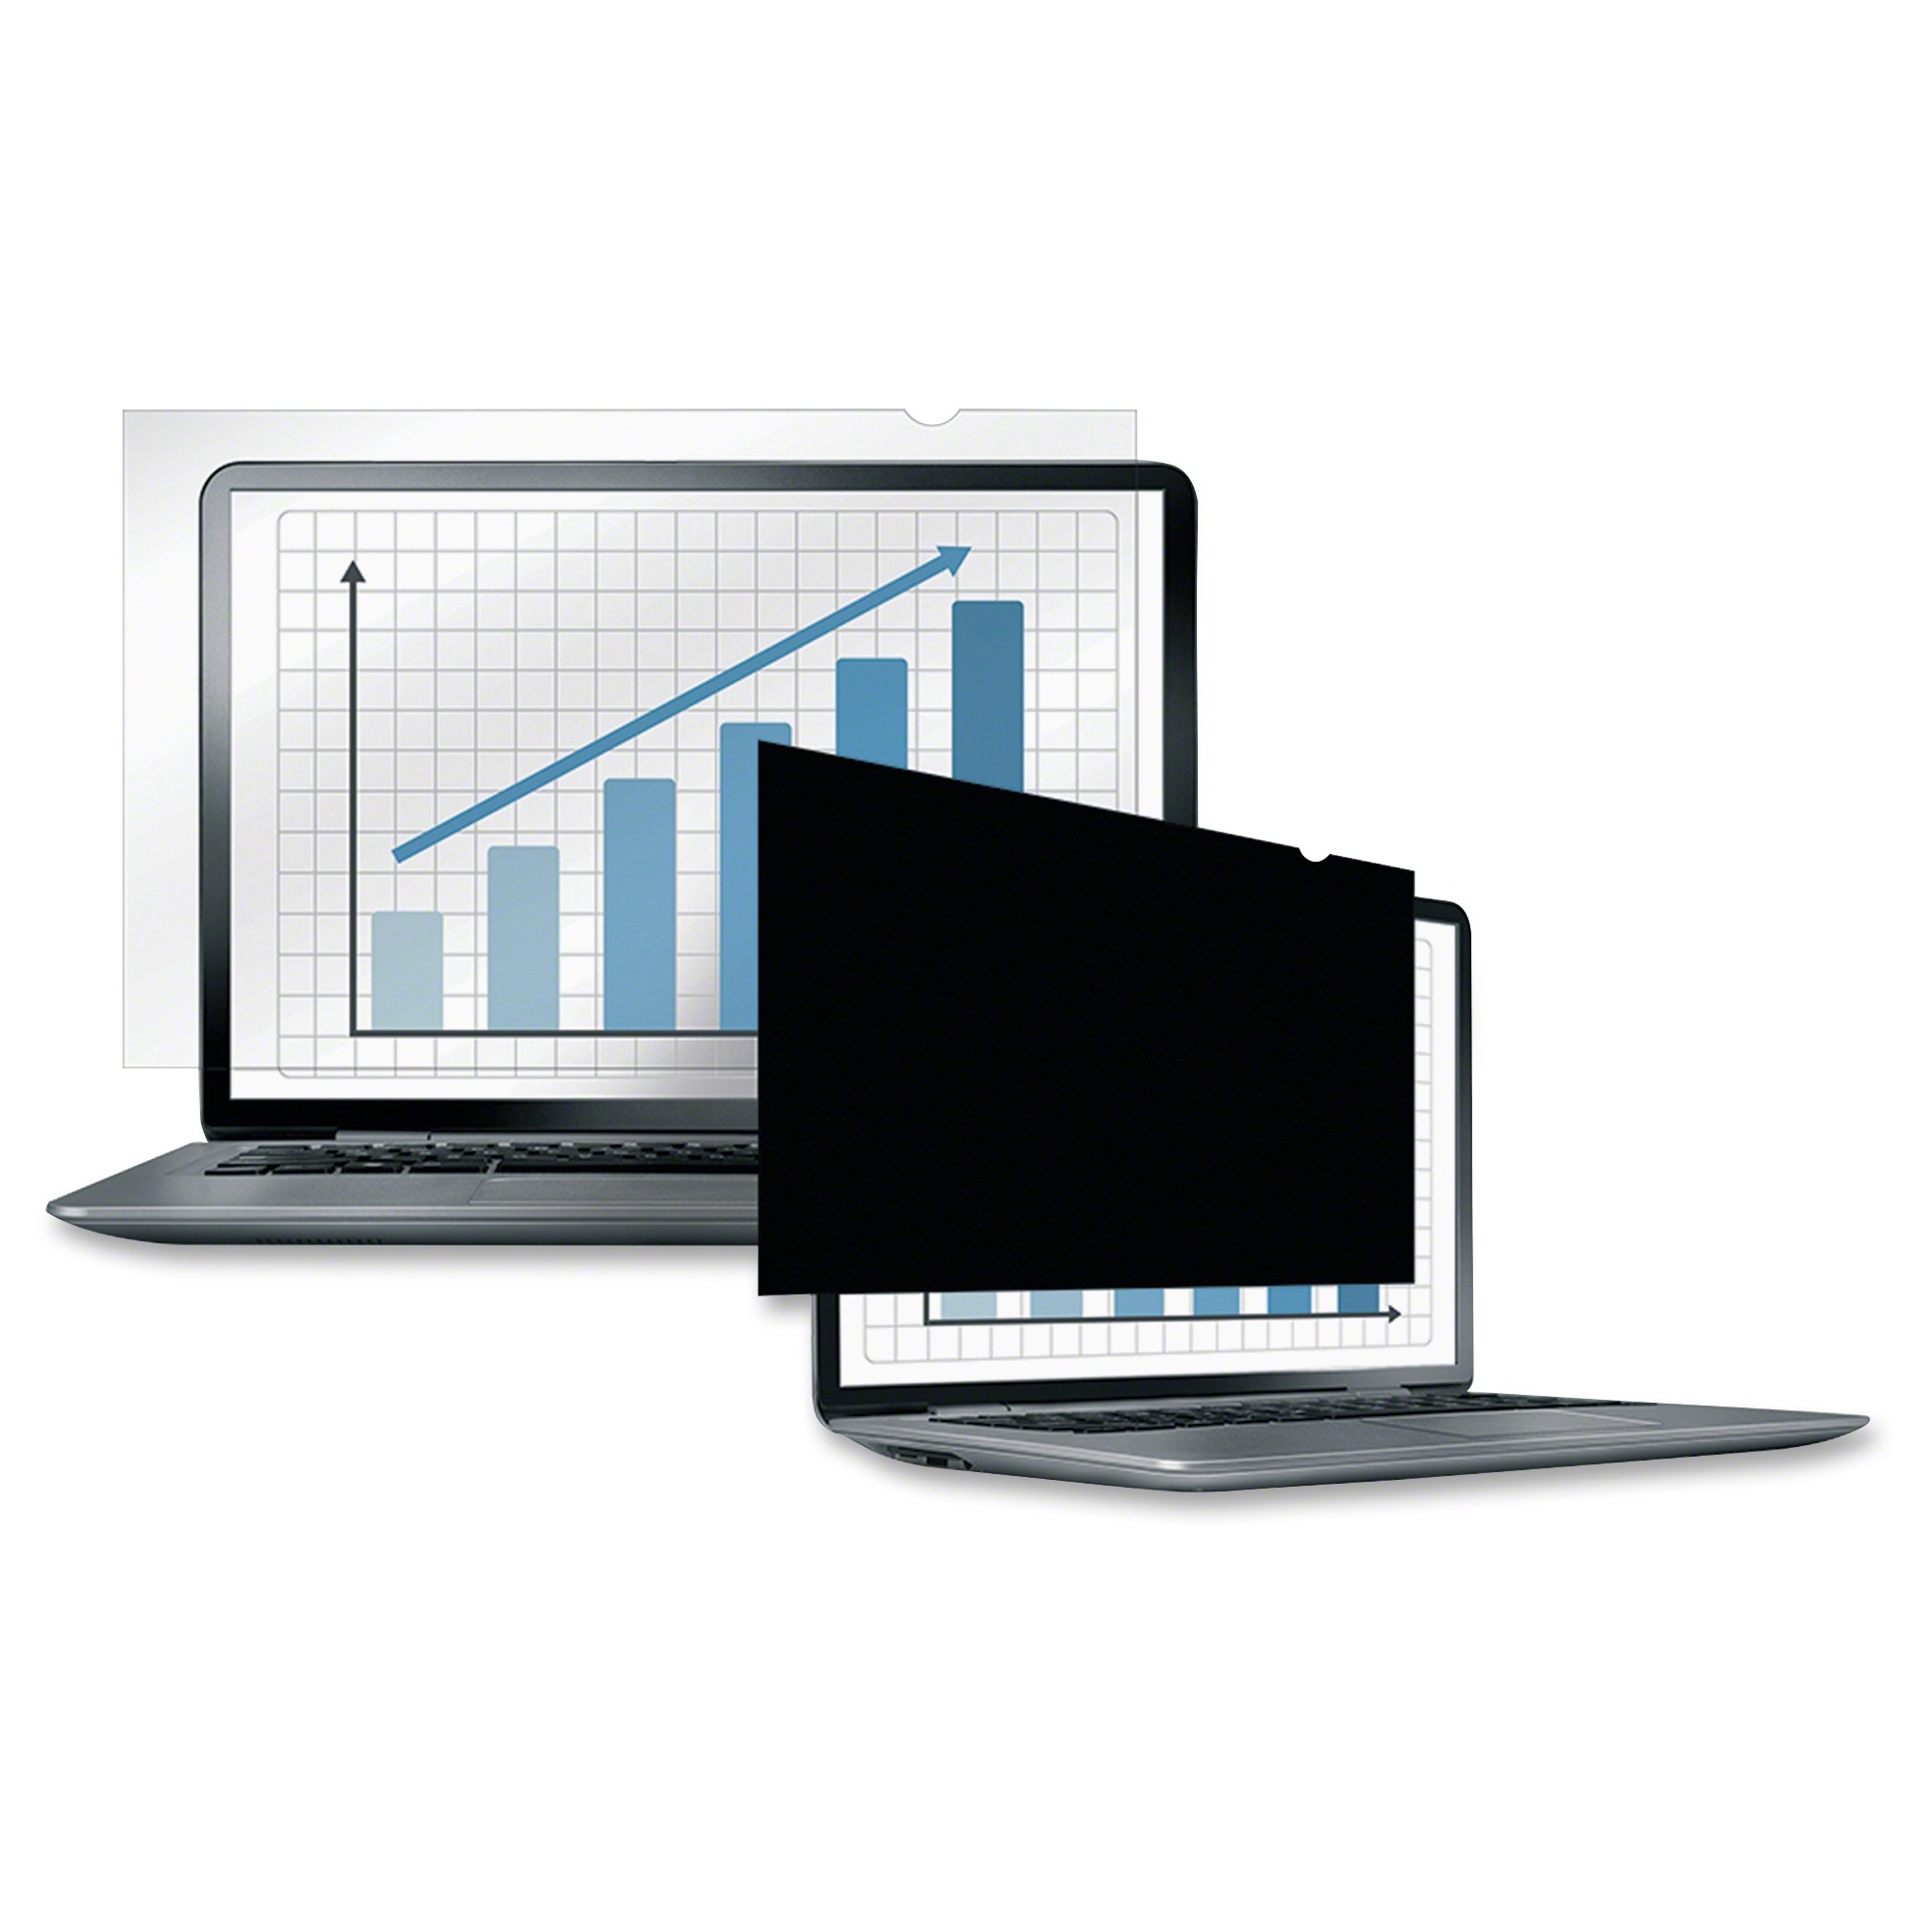 Laptop/Flat Panel Privacy Filter - 17.3 inch W - TAA Compliant Black - 17.3 inch LCD Notebook Monitor